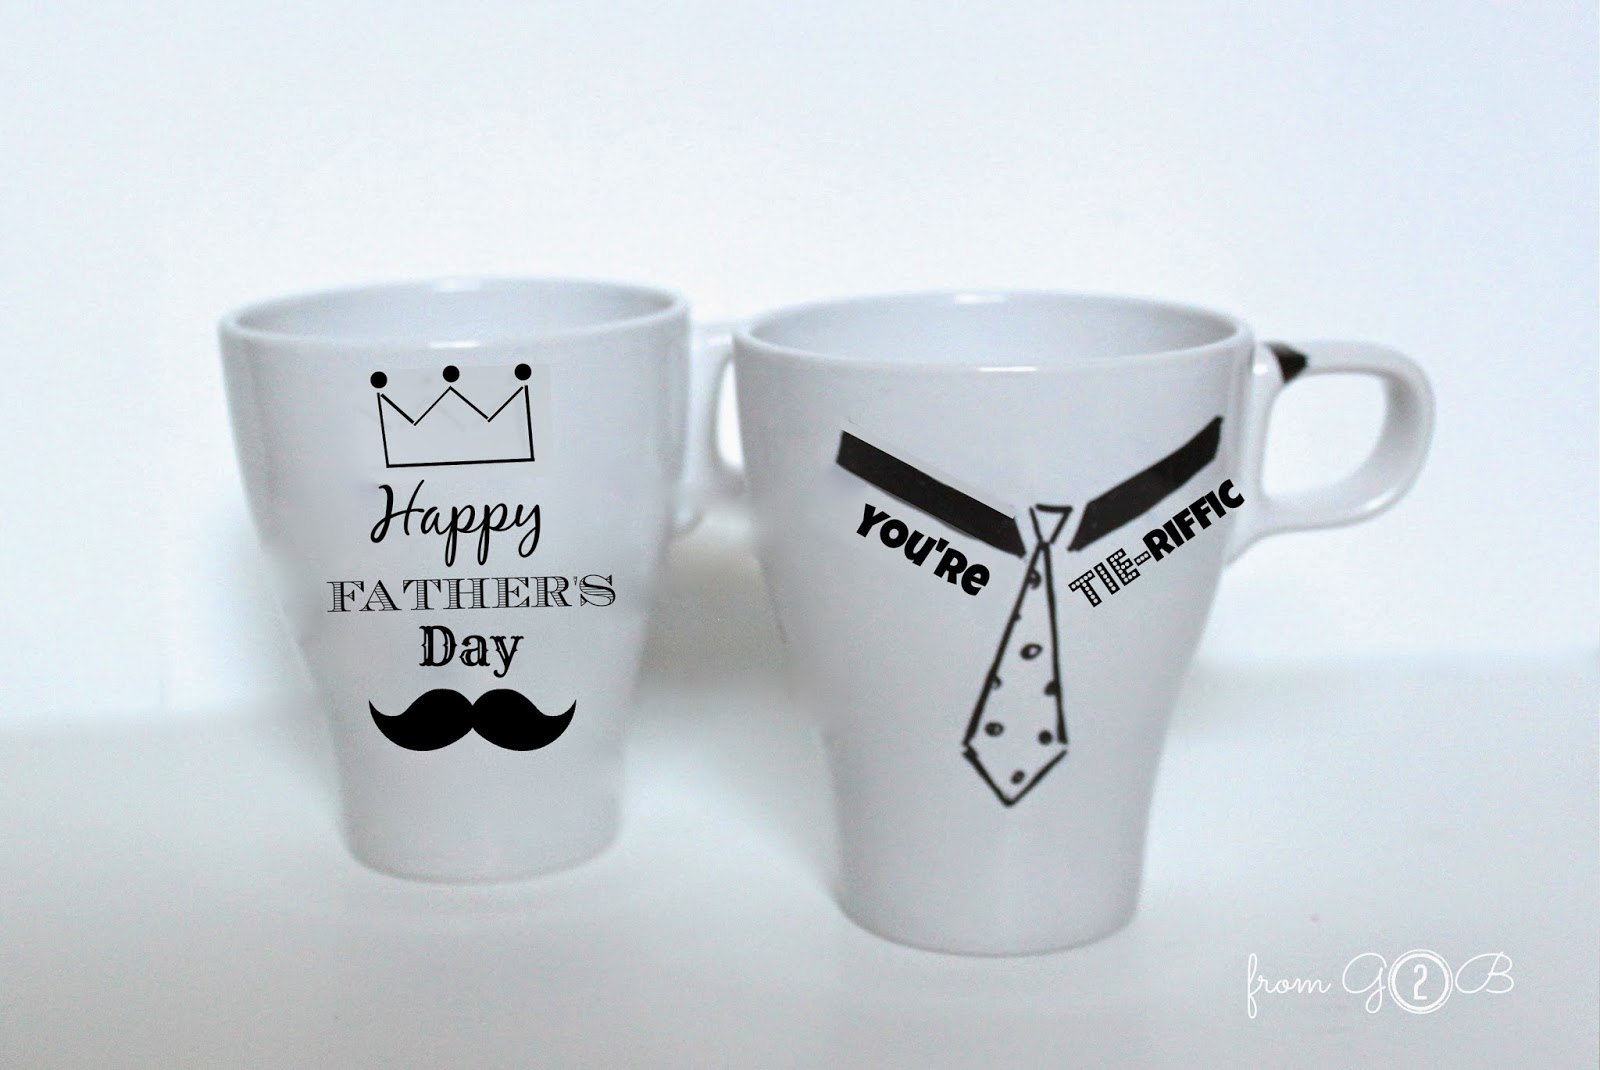 extraordinary mug design. Next  from Gardners 2 Bergers Father s Day Sharpie Mugs